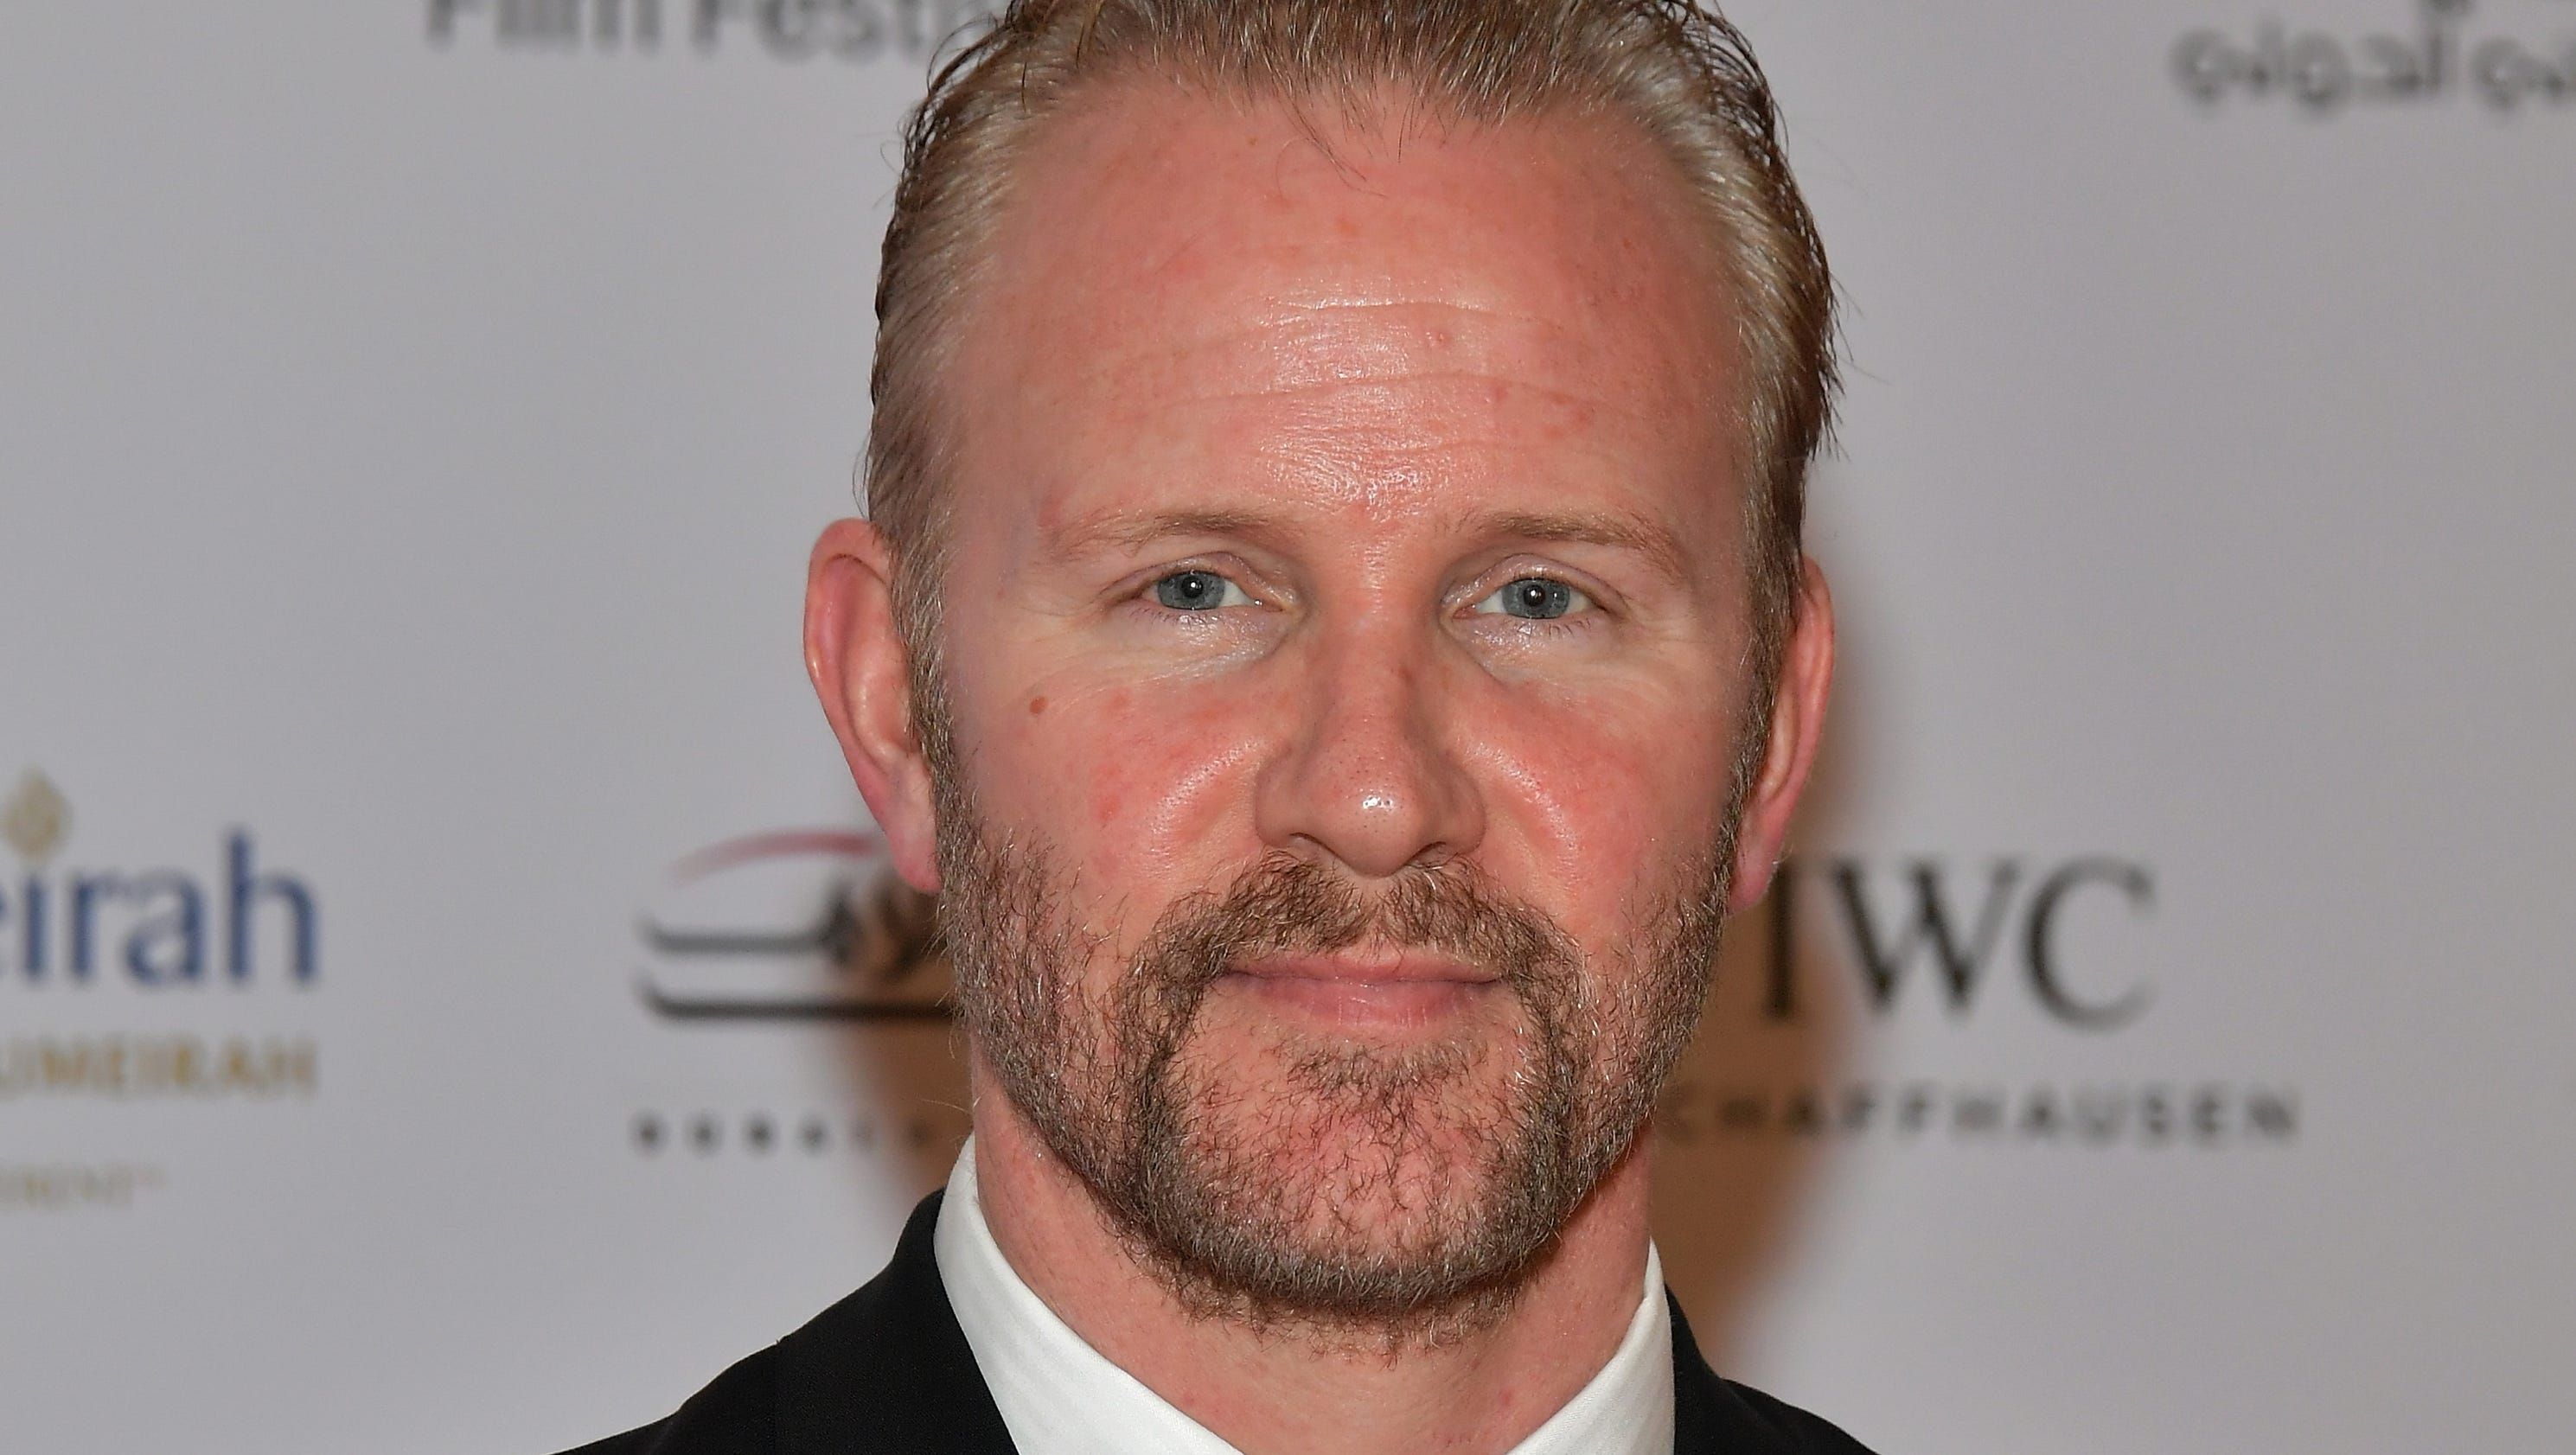 Morgan Spurlock steps down from his company after revealing his own sexual misconduct